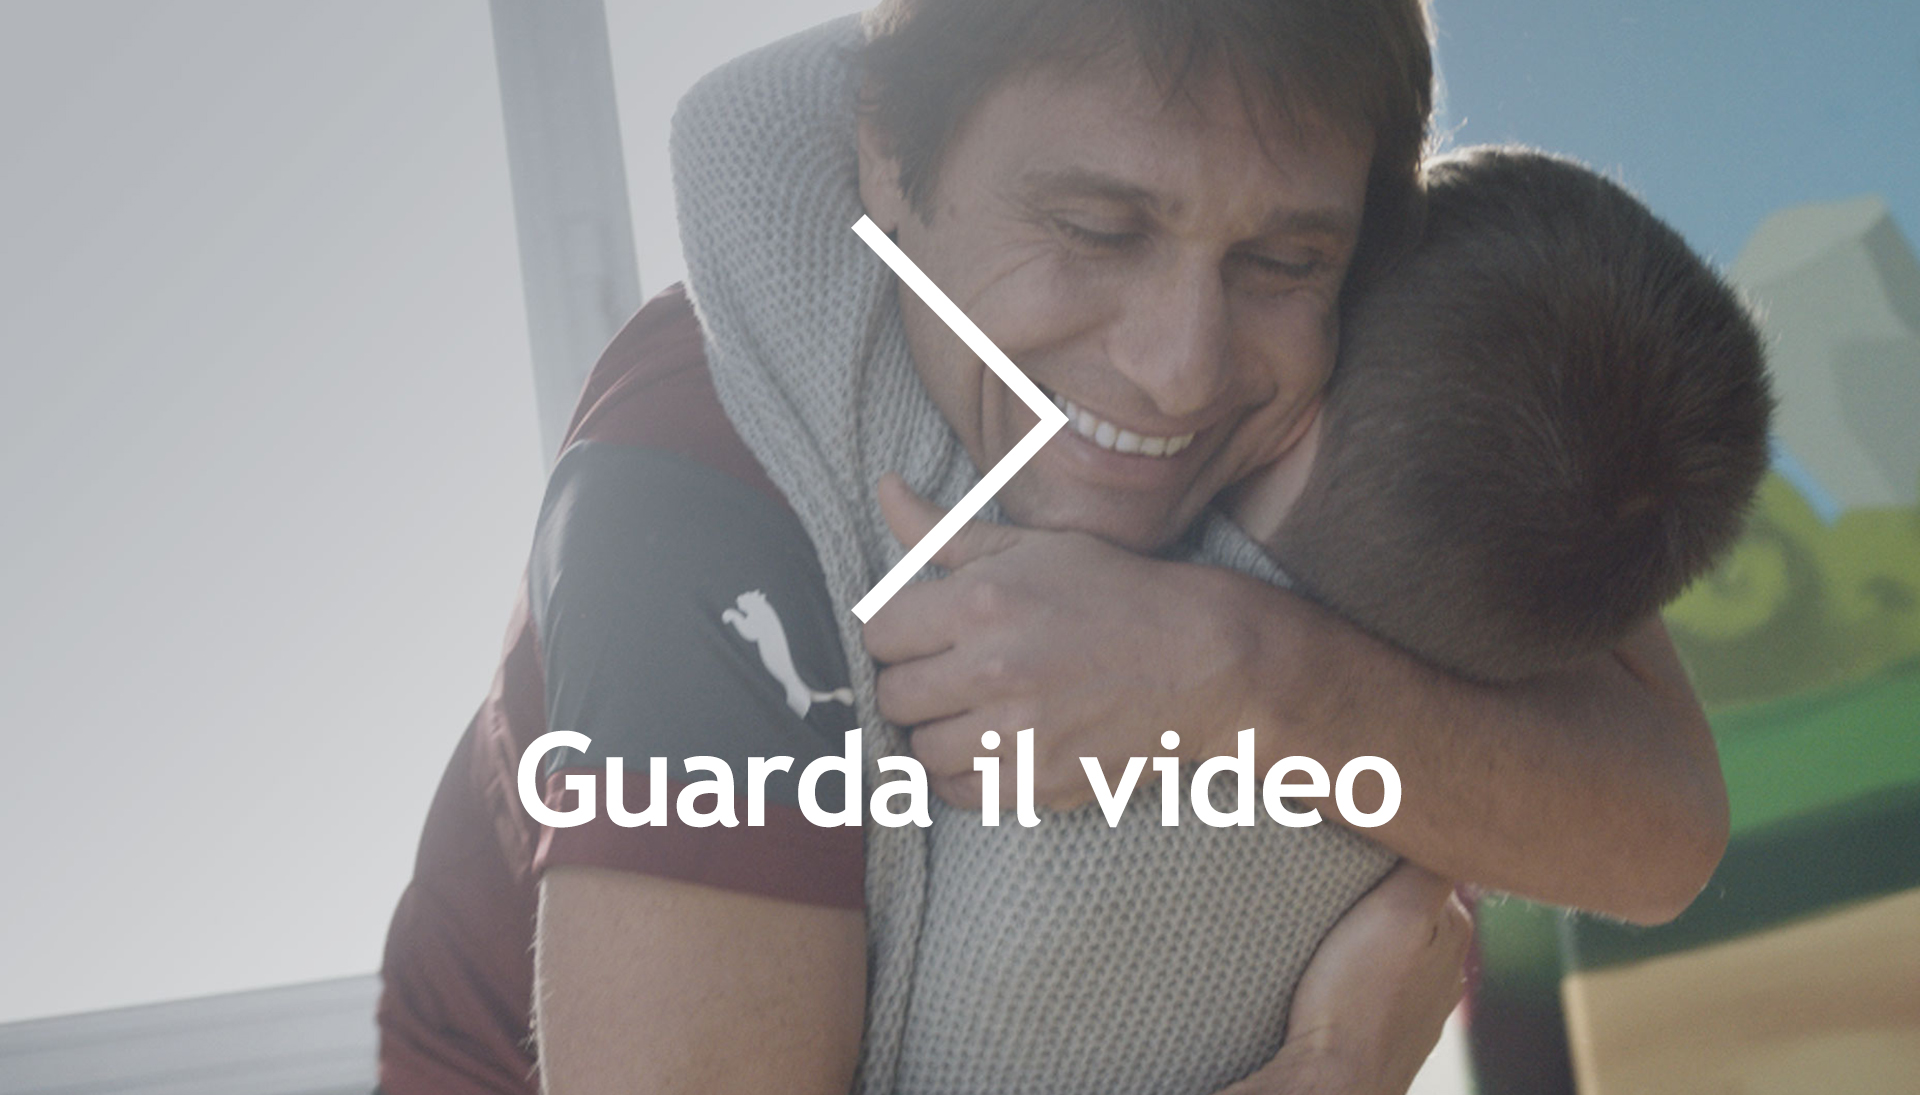 About Agency - fondazione don carlo gnocchi onlus video - The Prosumer Agency